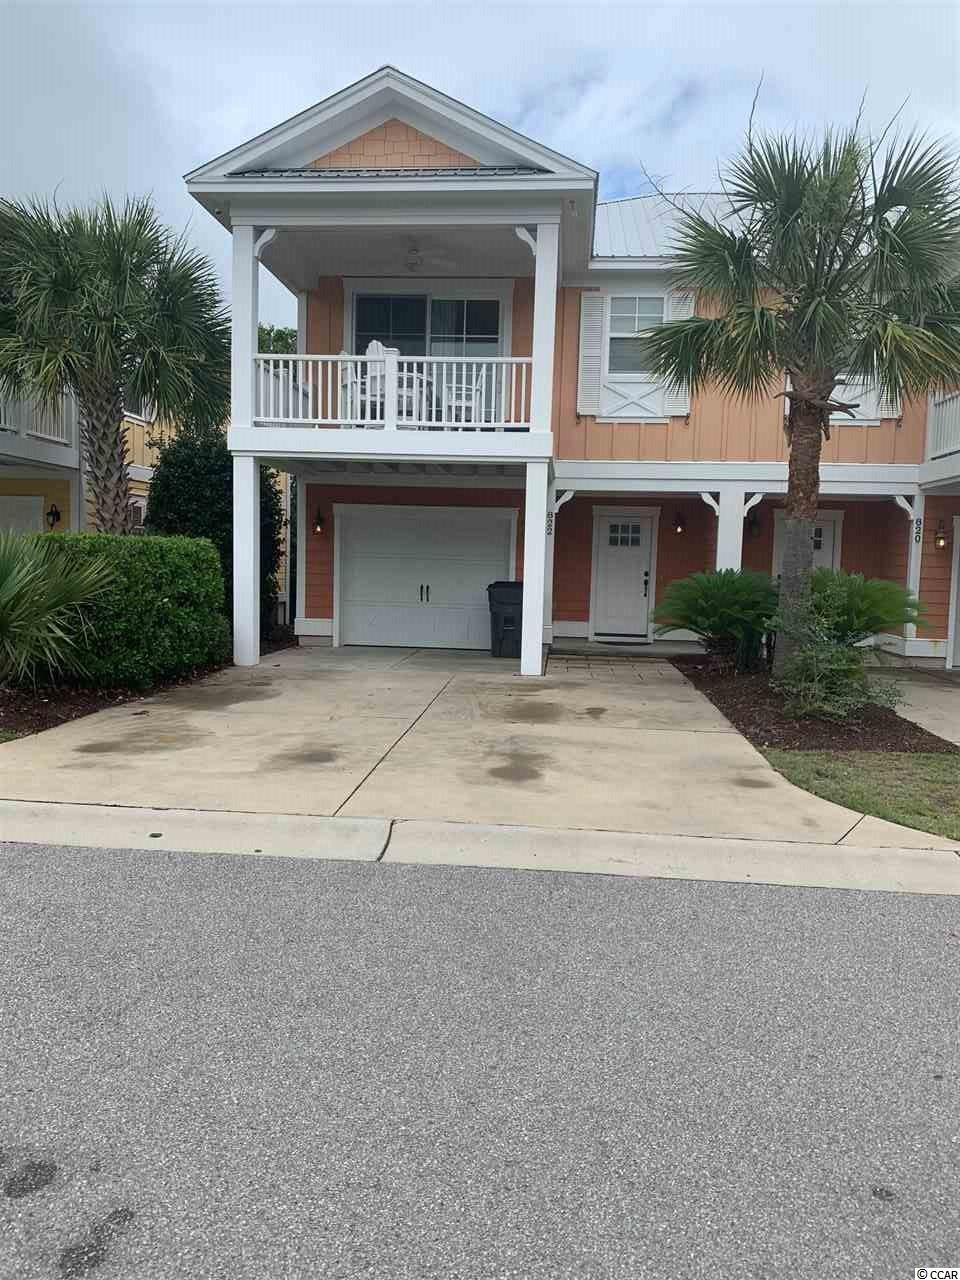 Spacious fully furnished Townhome located in North Beach Plantation.  Amenities include 2.5 acre pool complex with swim up bar, free shuttle anywhere within complex, fitness center.  Located across the street from Barefoot Landing & Marina and 4 championship golf courses. North Beach Plantation also includes 4 onsite restaurants and world class Cinza spa.